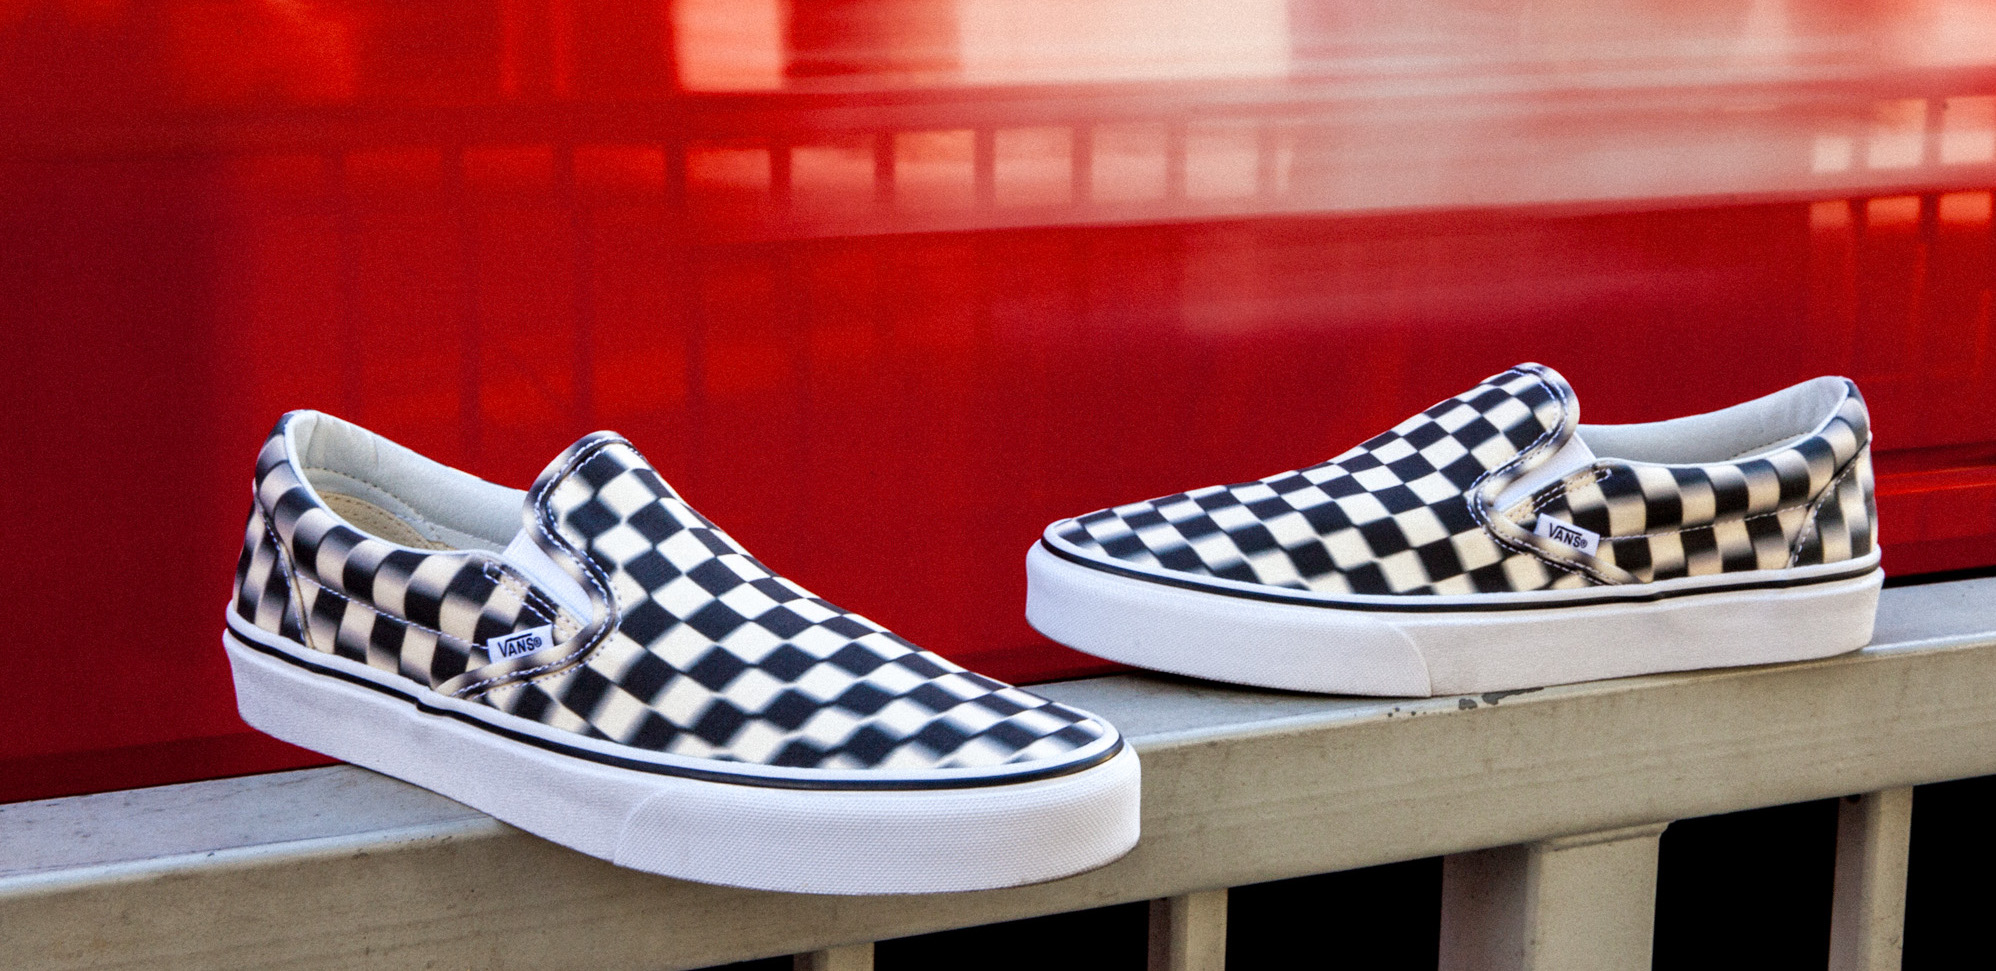 Vans Checkerboard Slip-On i suddig tolkning